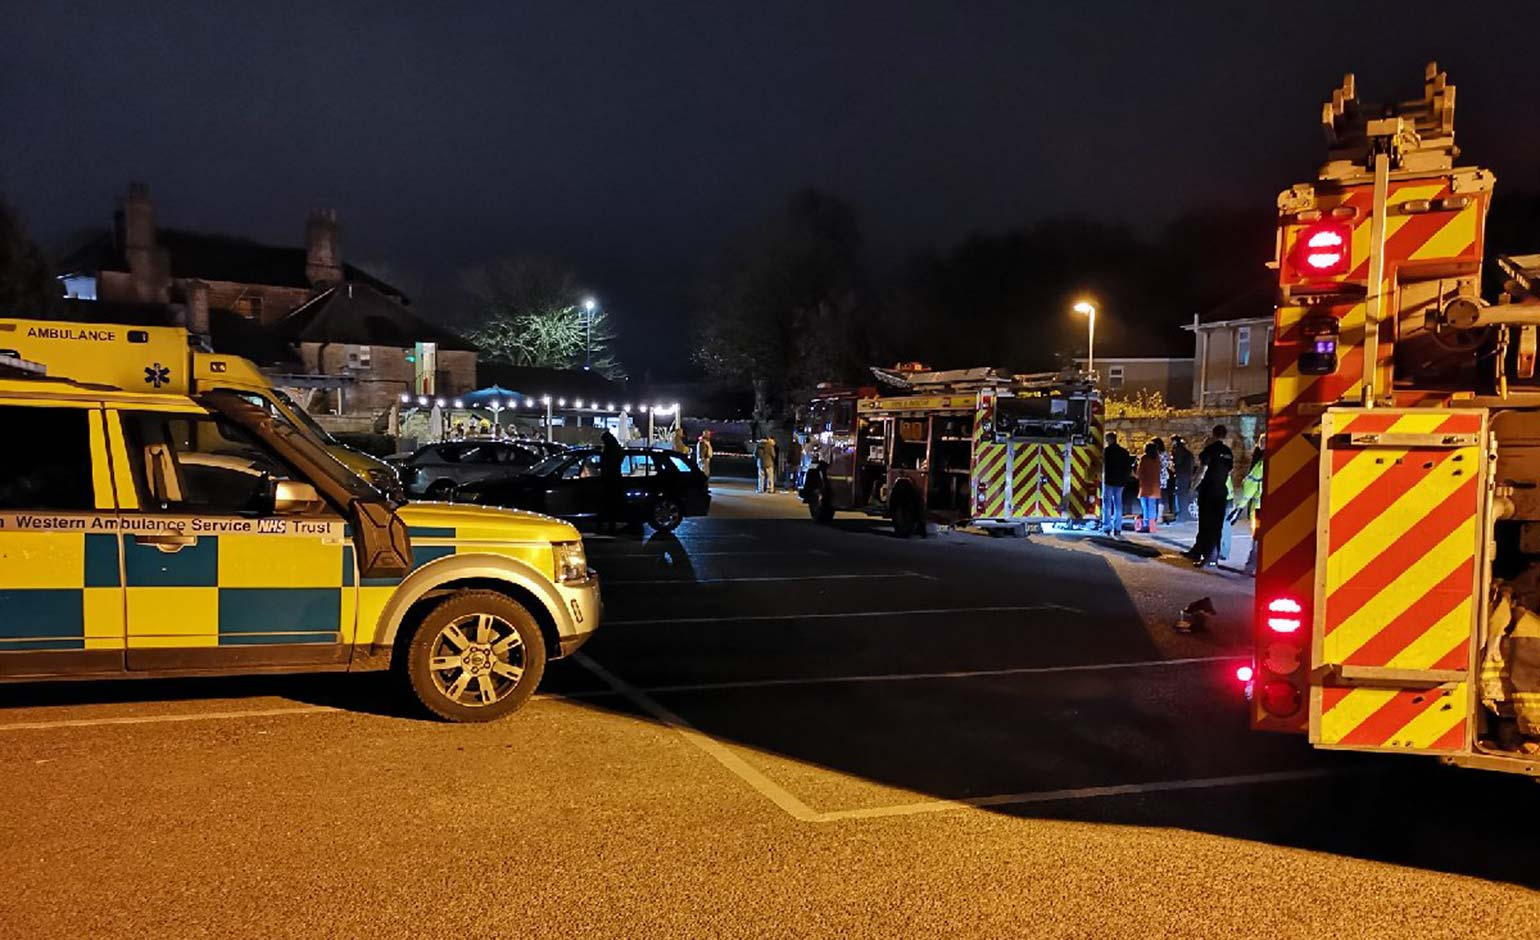 Over 20 people treated following chemical spillage at Red Lion pub in Bath